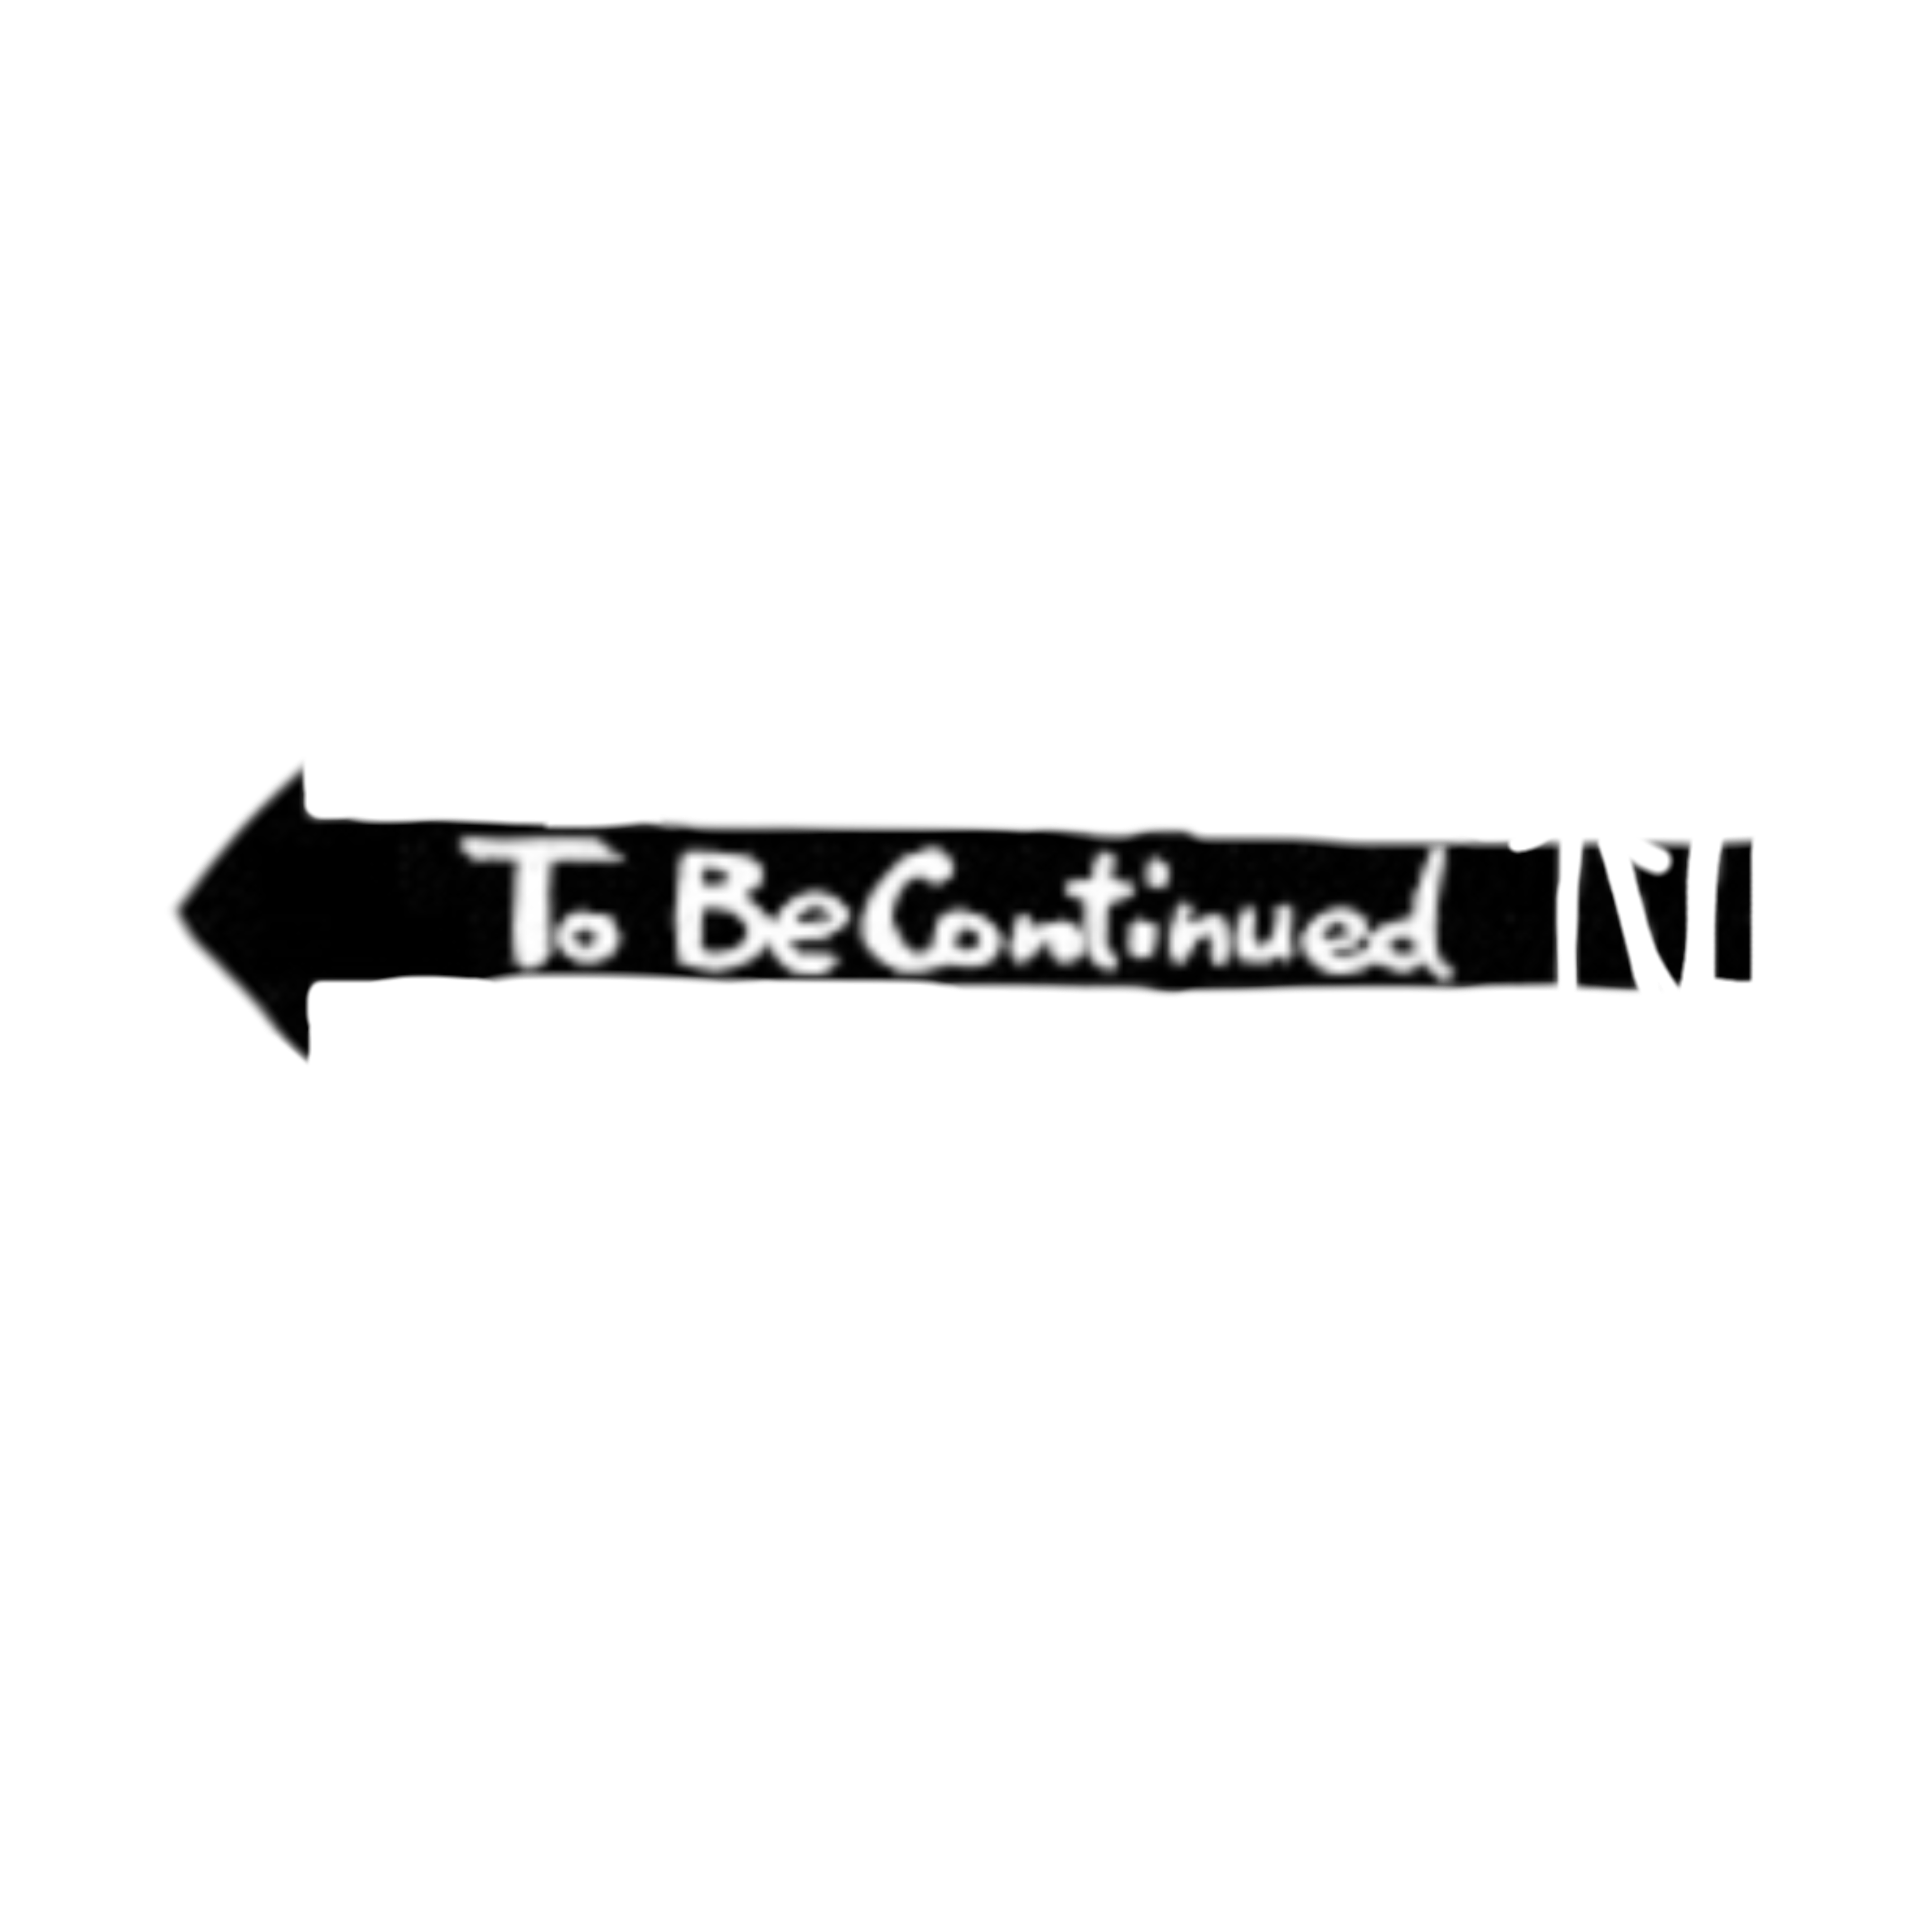 tobecontinued to be continued meme freetoedit...